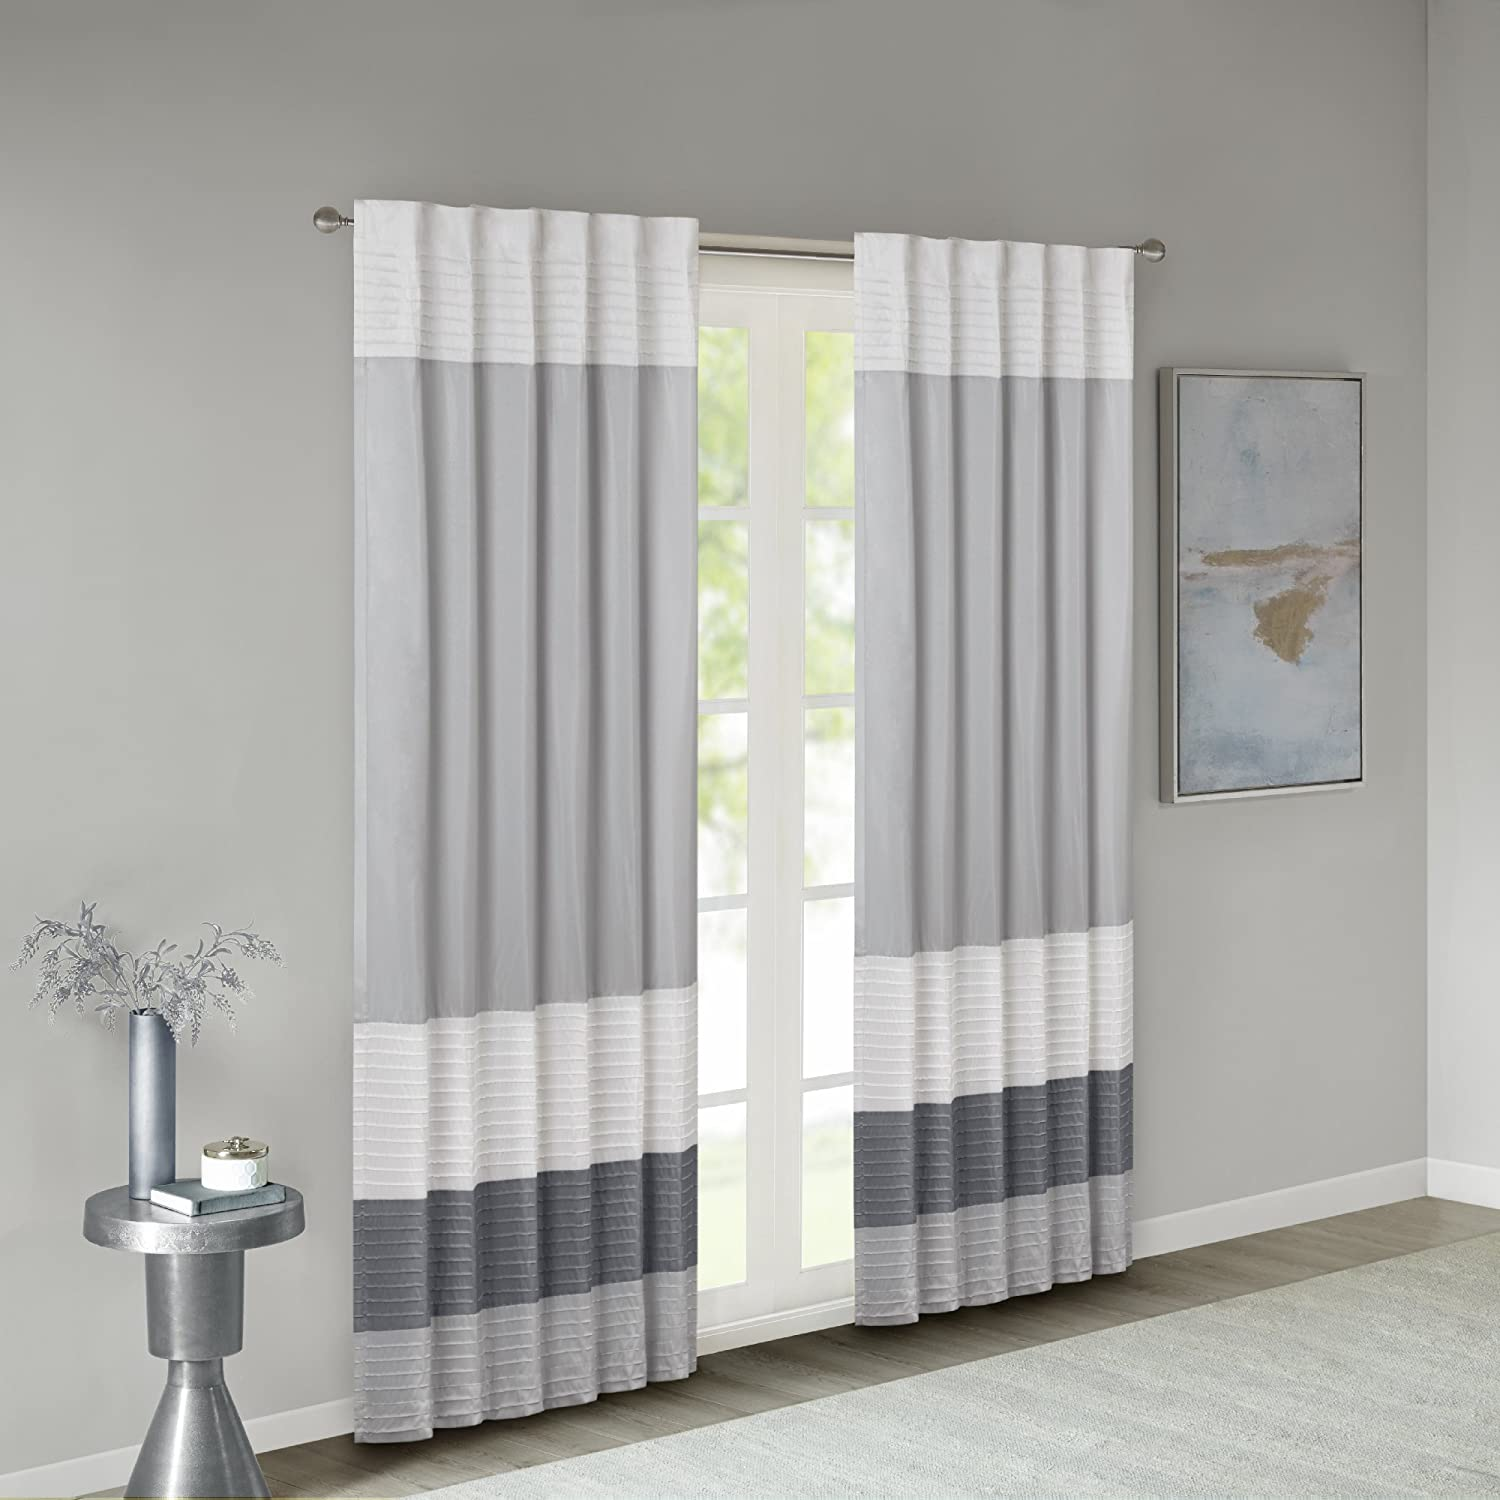 Madison Park Black Curtains for Living Room, Transitional Rod Pocket Light Curtains for Bedroom, Amherst Pieced Back Tab Modern Window Curtains, 50X84, 1-Panel Pack JLA Home MP40-2220